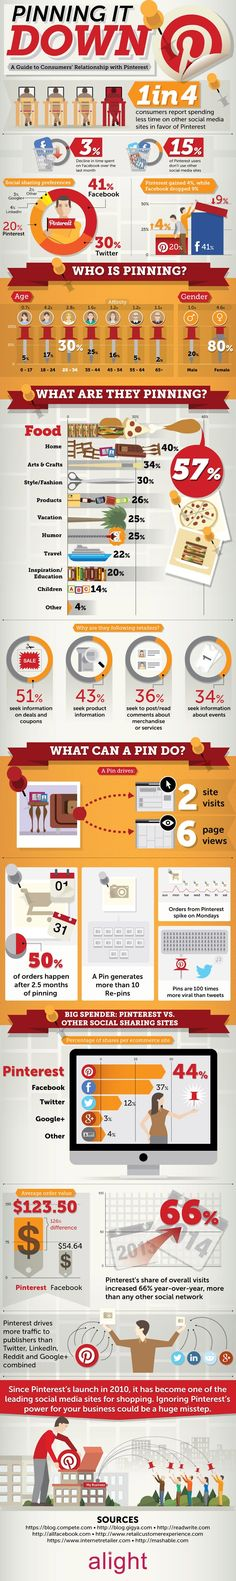 Pinning it Down: A Guide to Consumers' Relationship with #Pinterest - #socialmedia #infographic #marketing #business